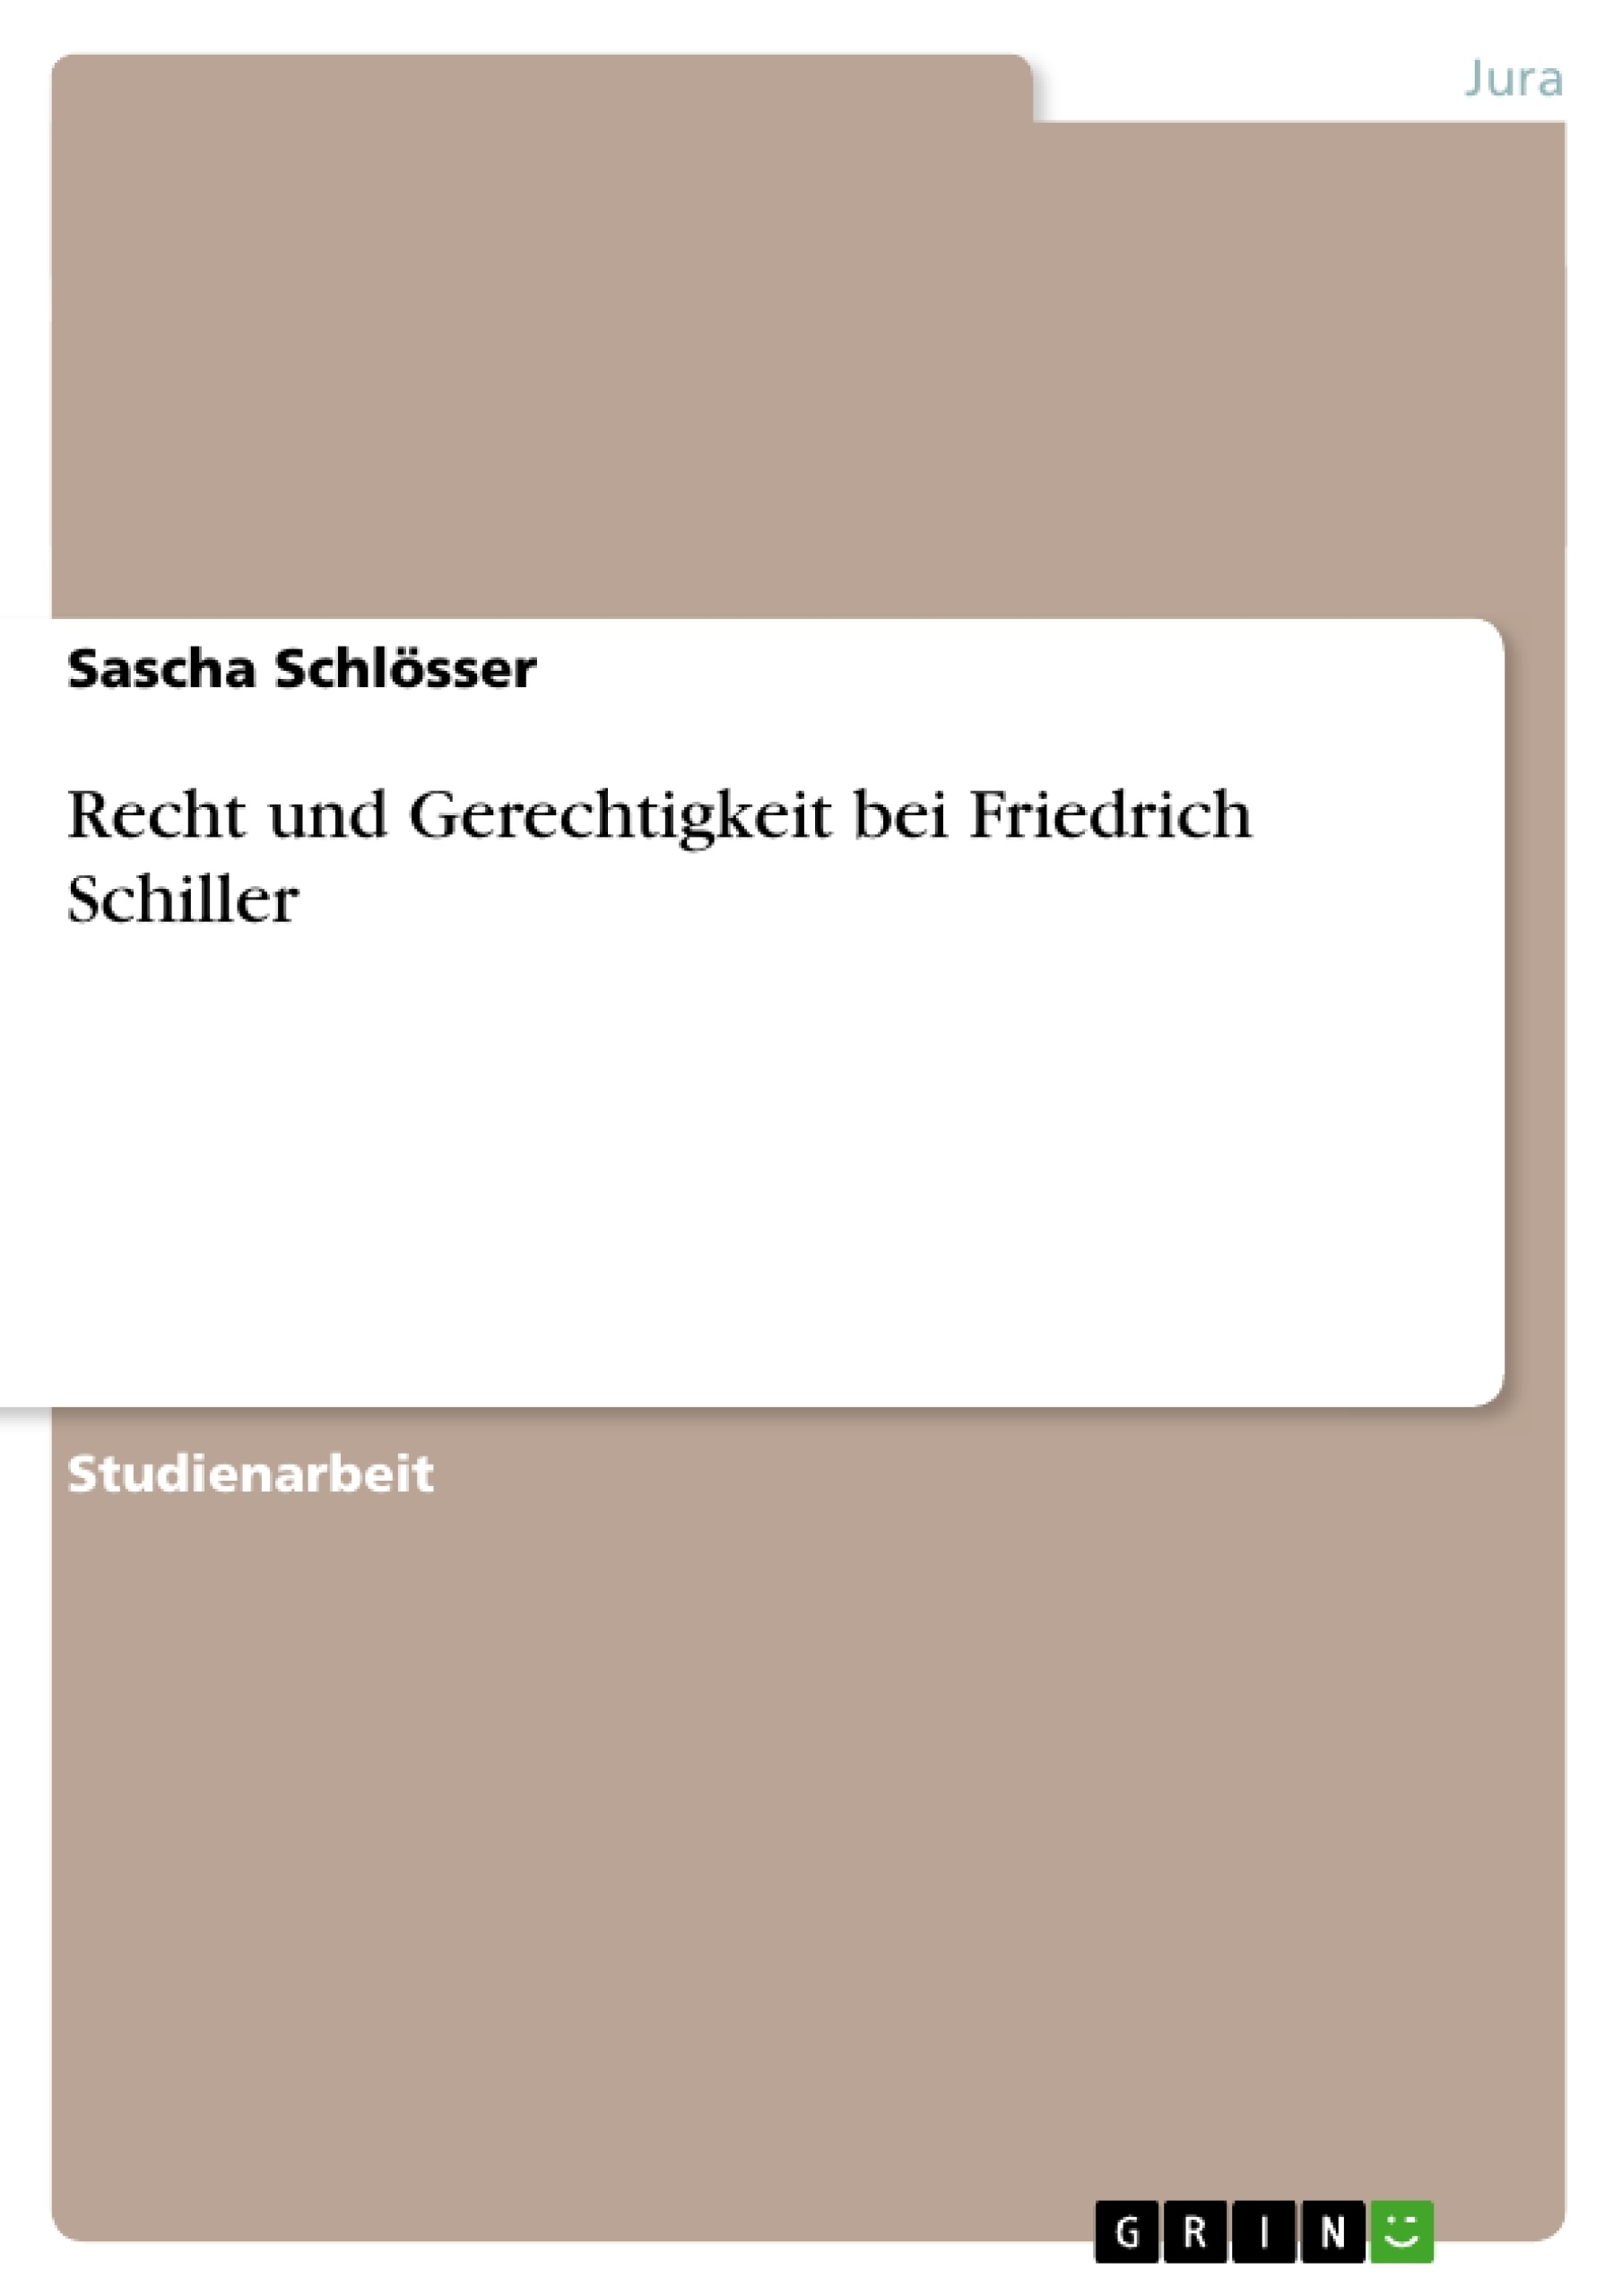 friedrich schiller essays Biography on johann christoph friedrich von schiller 1785 words feb 26th, 2018 7 pages from a young age schiller proved to be very successful in academia, and began writing plays while still attending military academy.